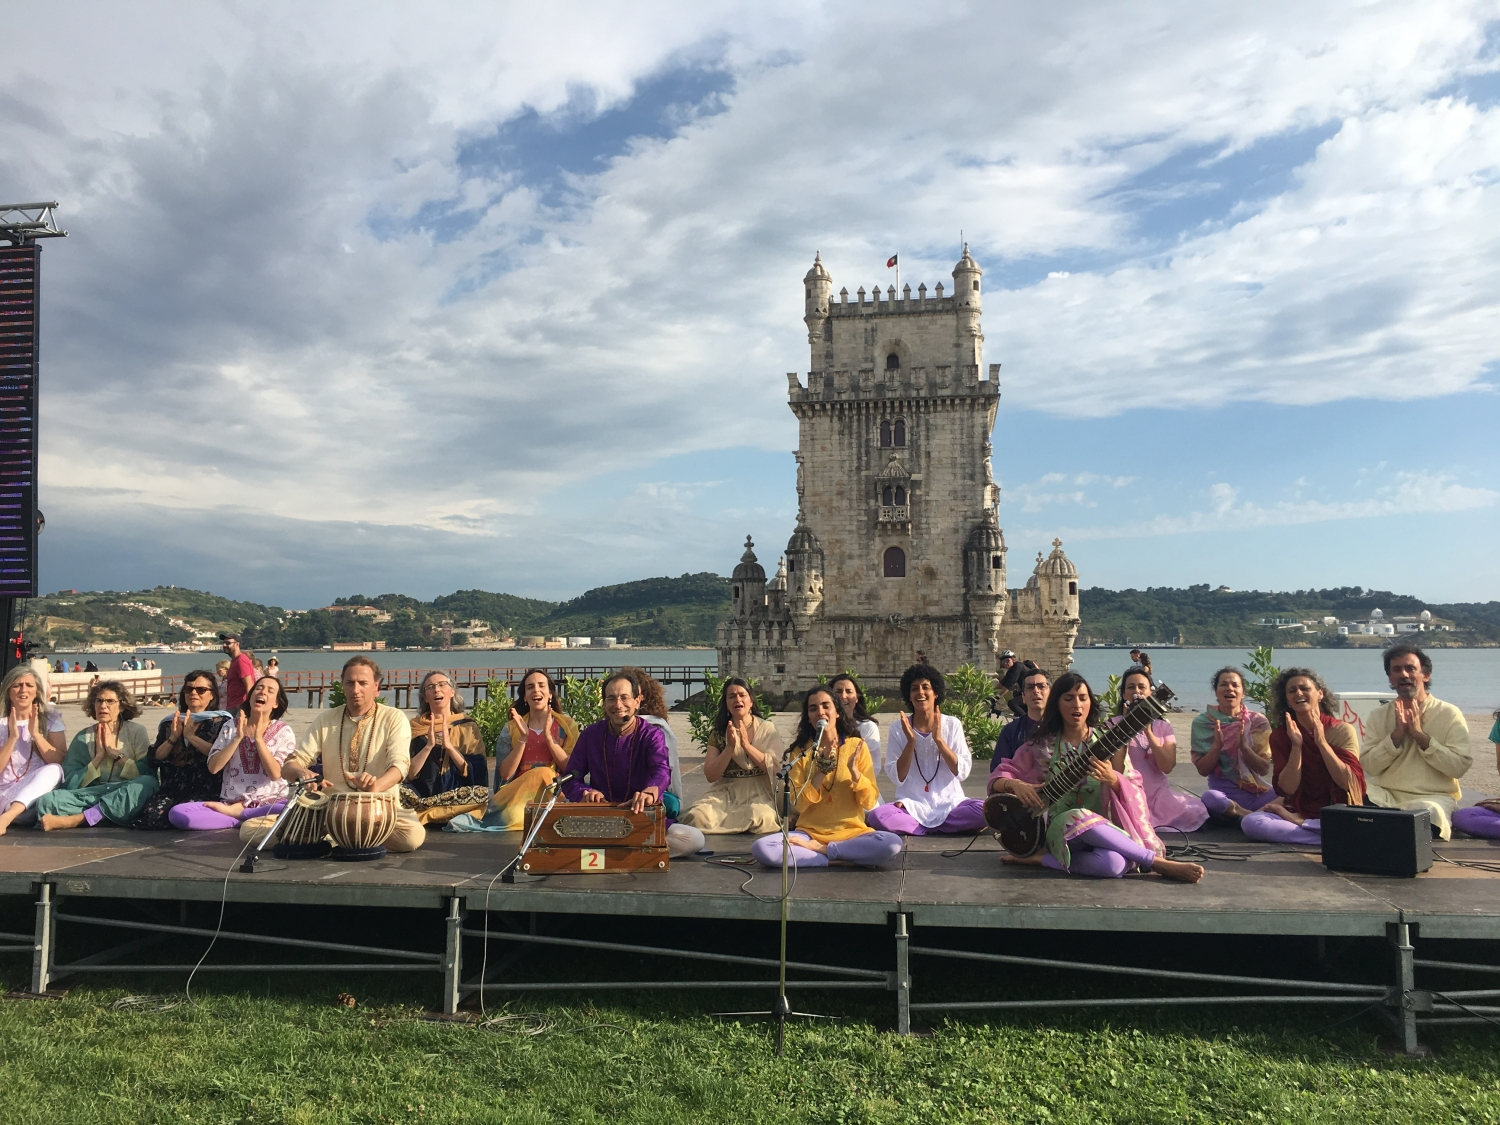 Celebration of the International Day of Yoga - IDY - 2018, June, 21st - Belém, Portugal